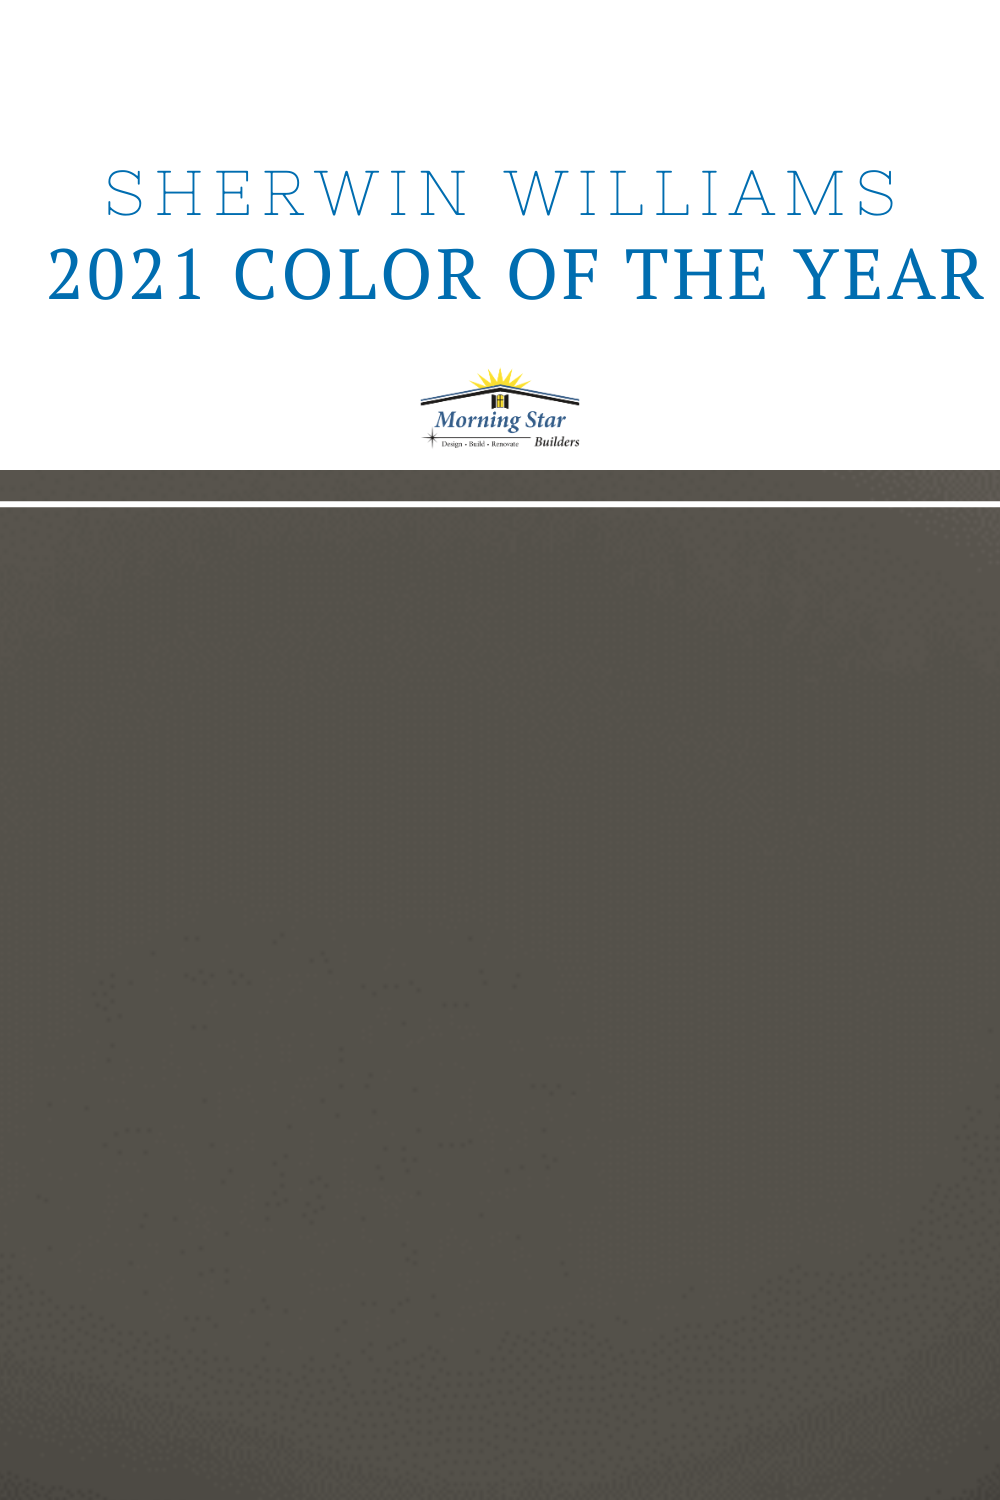 """Have you heard? Sherwin Williams has announced the 2021 Color of the Year! The paint brand invites you to """"Tap into nature with a hue whose warmth and comfort breathe down-to-earth tranquility"""" with Urbane Bronze. #sherwinwilliams #coloroftheyear2021 #urbanbronze"""